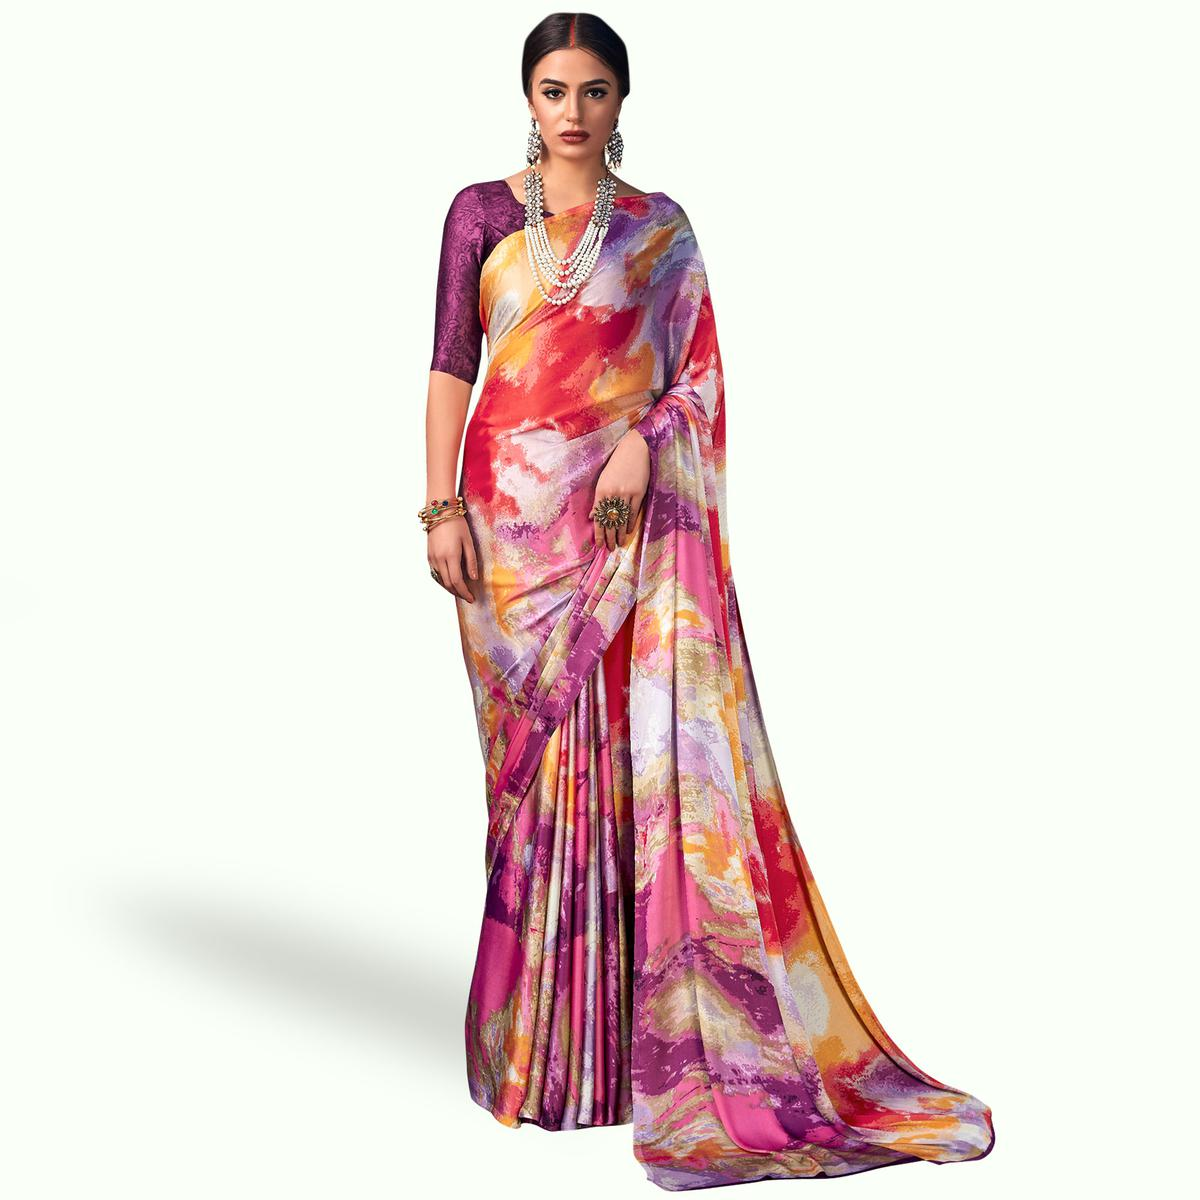 d270a0039e Buy Pretty Multicolored Casual Wear Digital Printed Satin Saree For womens  online India, Best Prices, Reviews - Peachmode